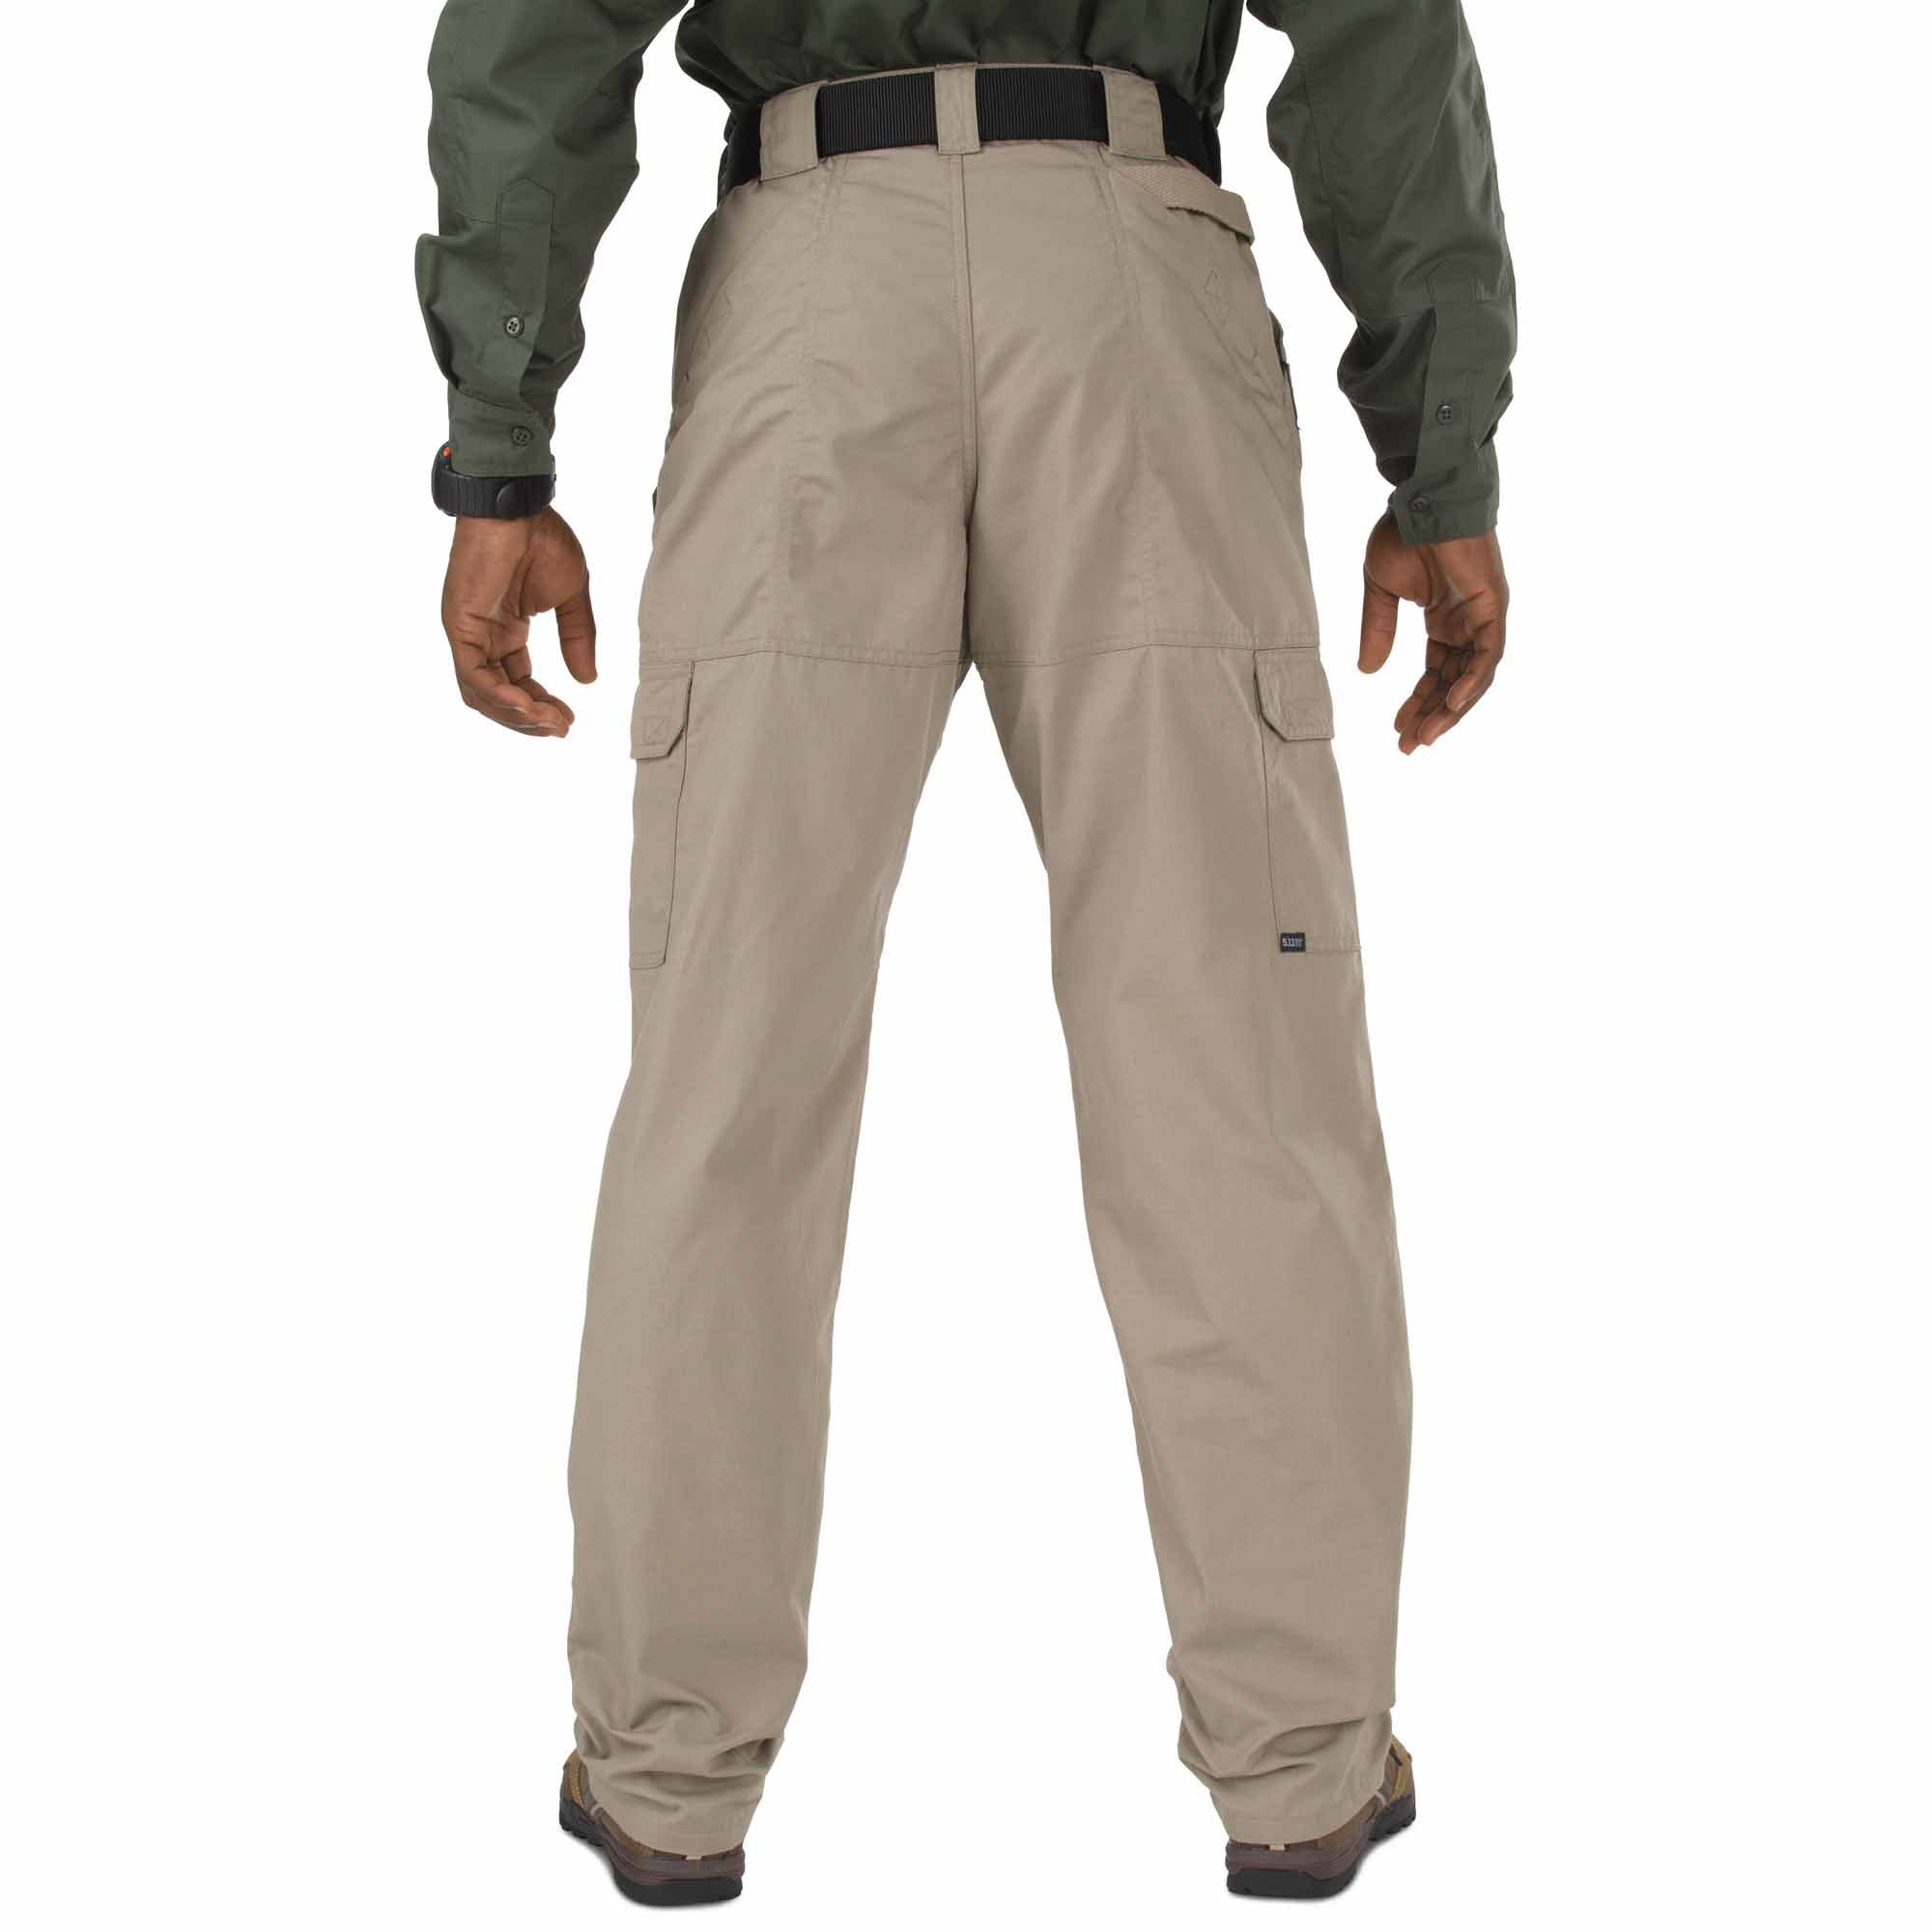 5.11 Men's TACLITE Pro Tactical Pants, Style 74273, Stone, 32Wx34L by 5.11 (Image #3)